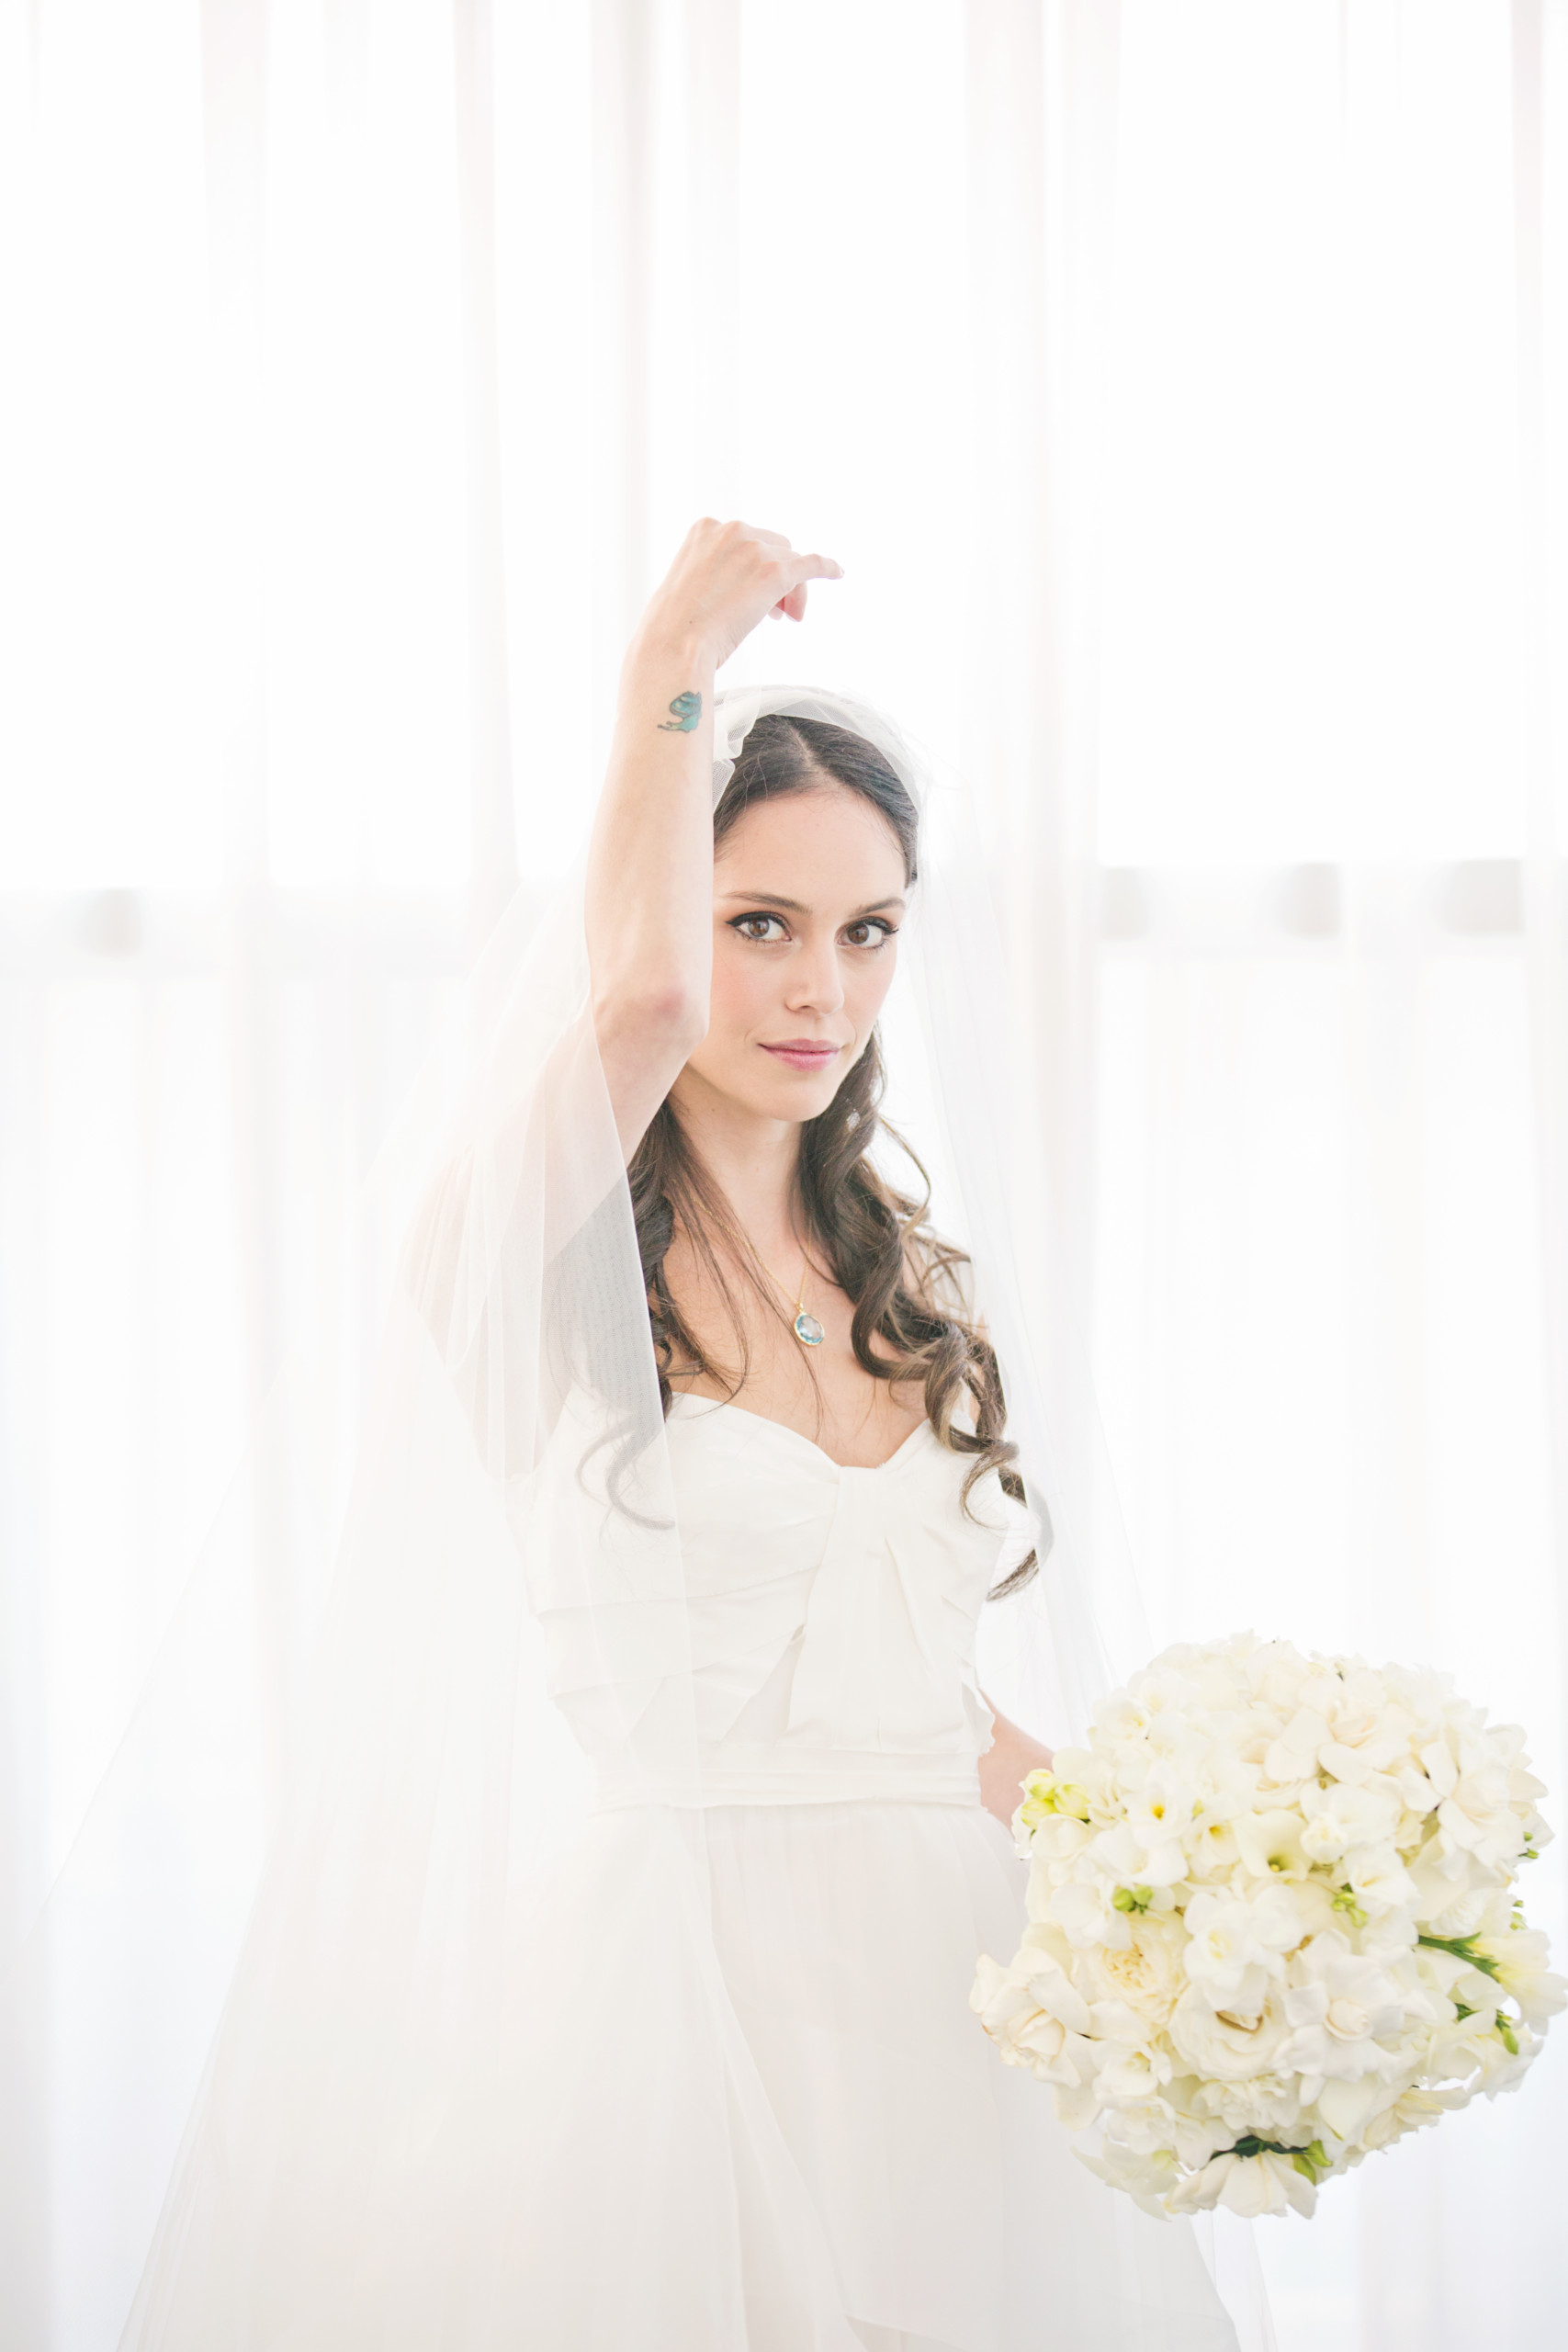 Bride with long dark hair and big smokey eye makeup lifts her veil and shows off her wrist tattoo, photographed at Chelsea Piers Pier 60